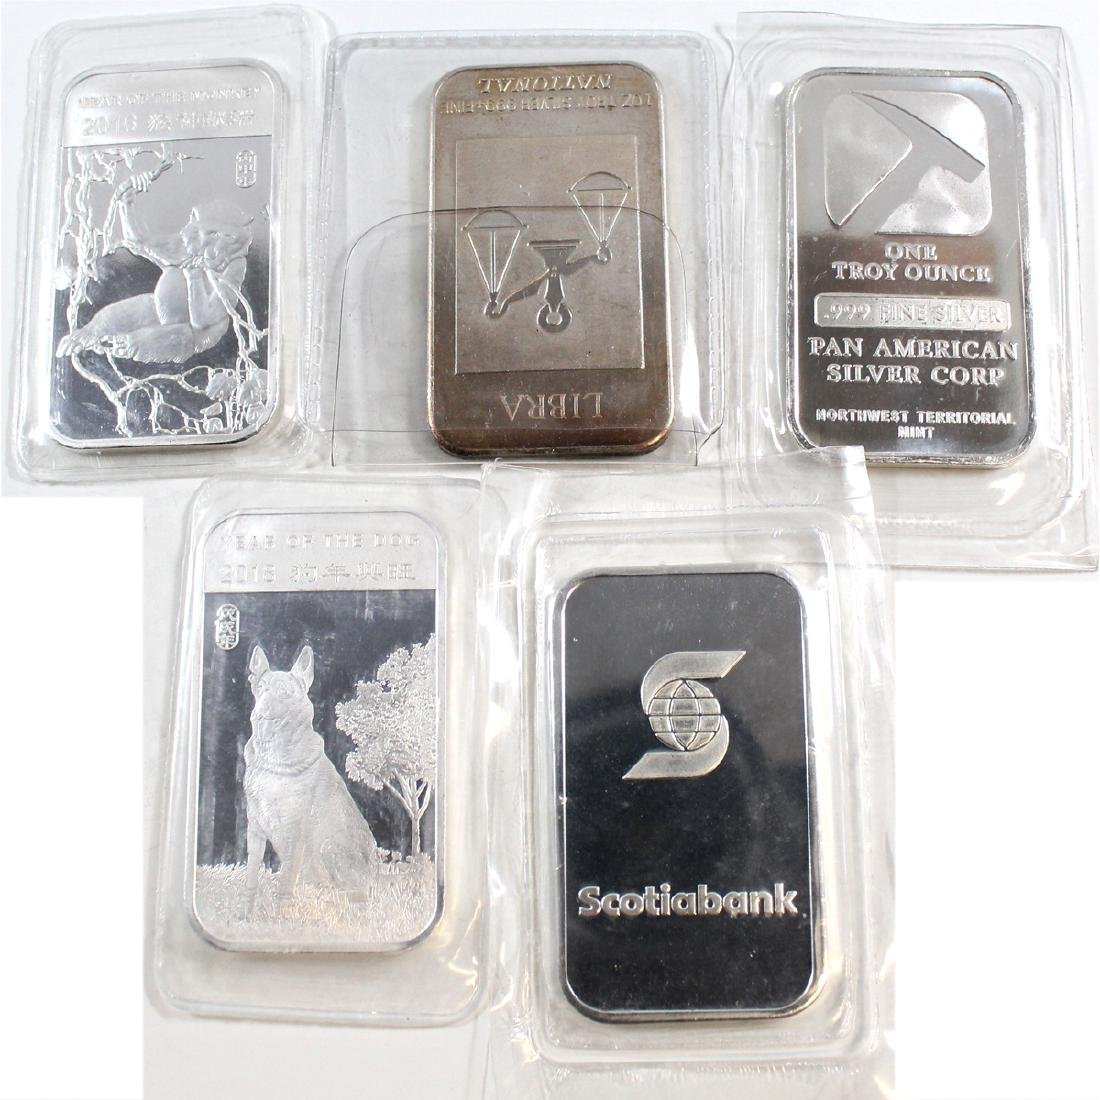 5x Miscellaneous 1oz .999 Fine Silver Bars (TAX